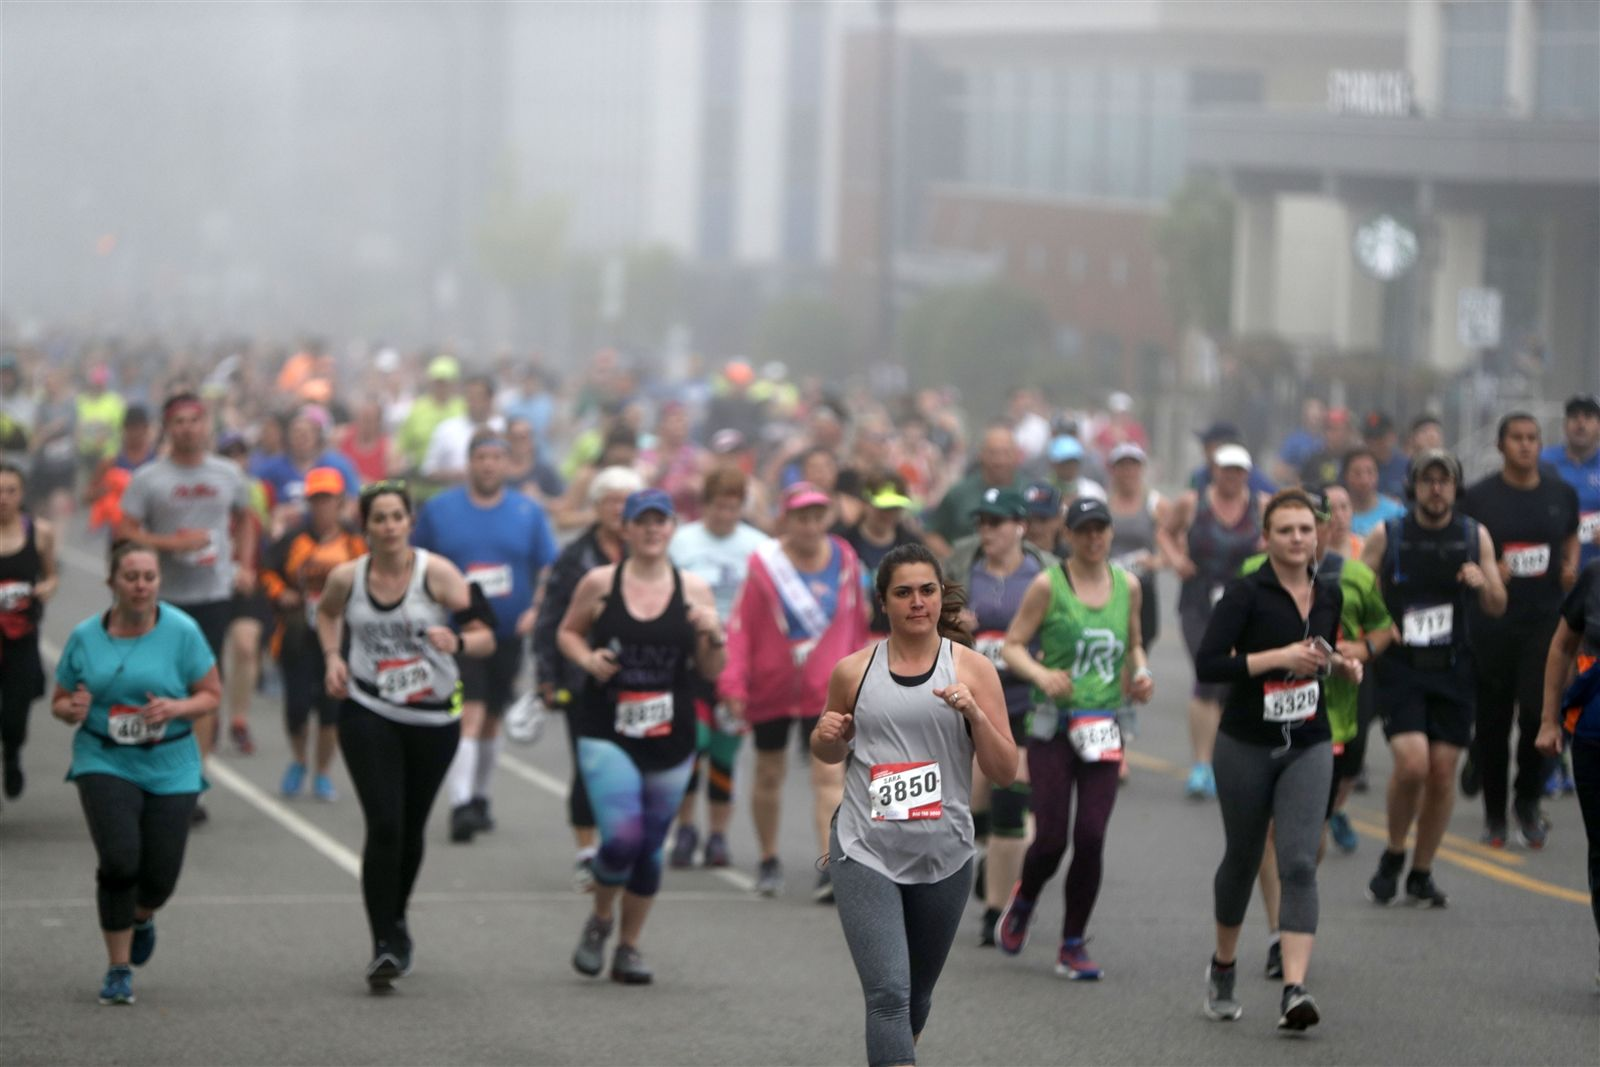 Runners take to Delaware Avenue in the fog during the Buffalo Marathon Sunday, May 26, 2019.